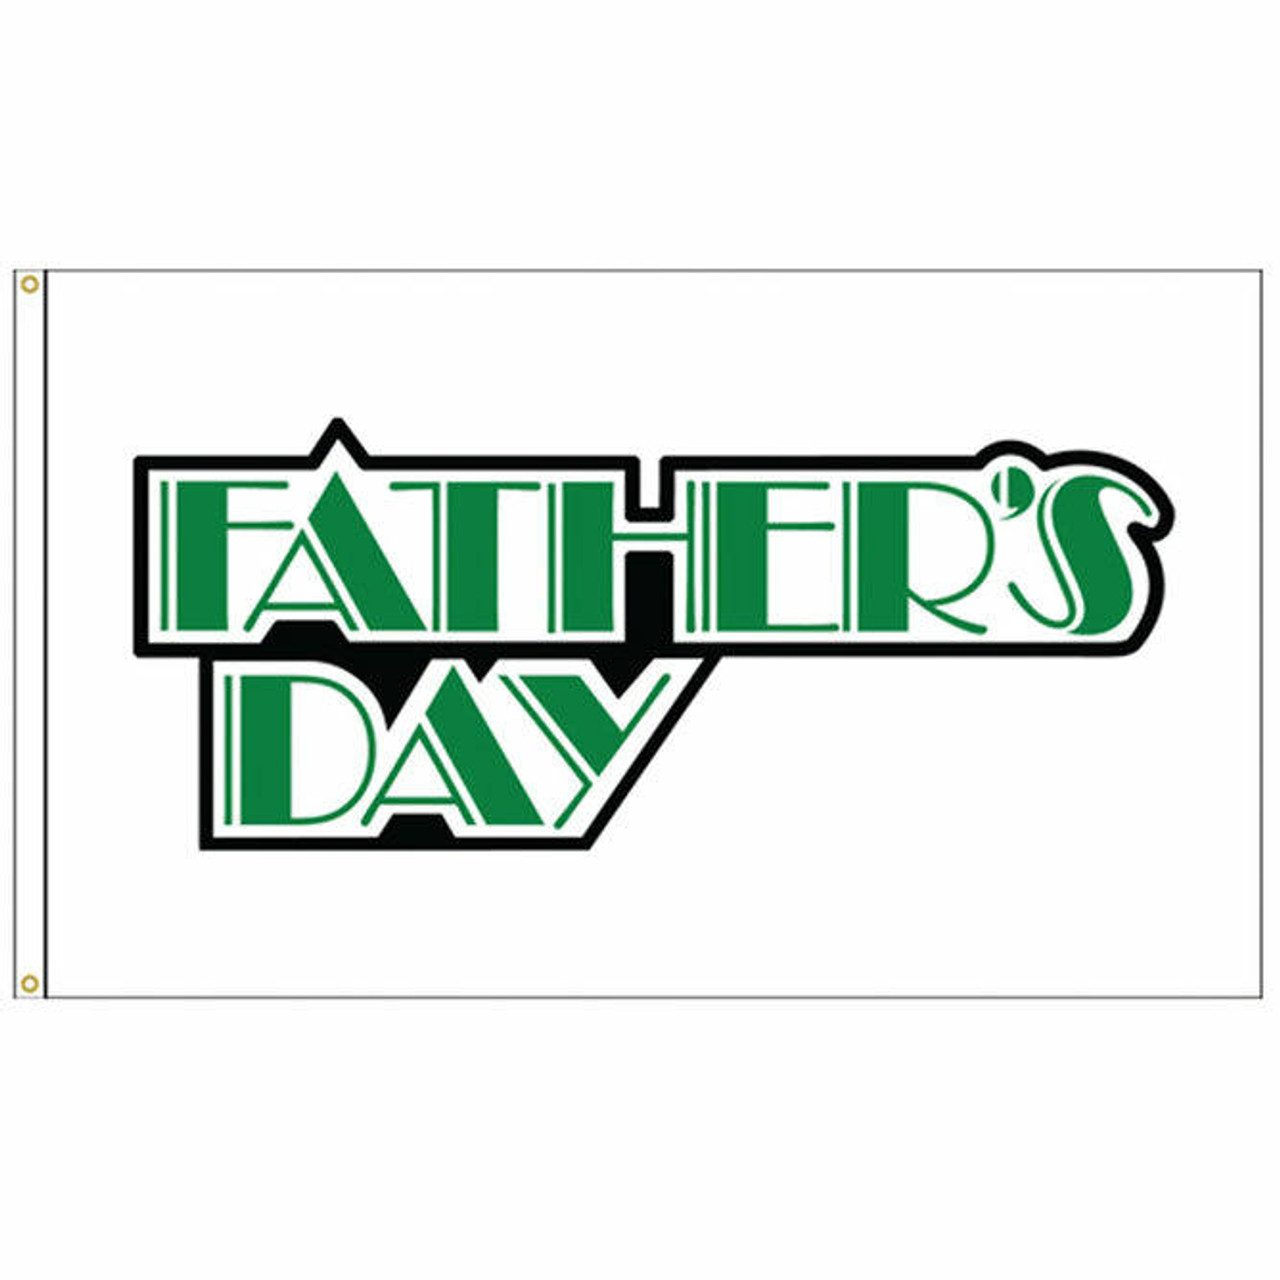 Fathers Day Flag